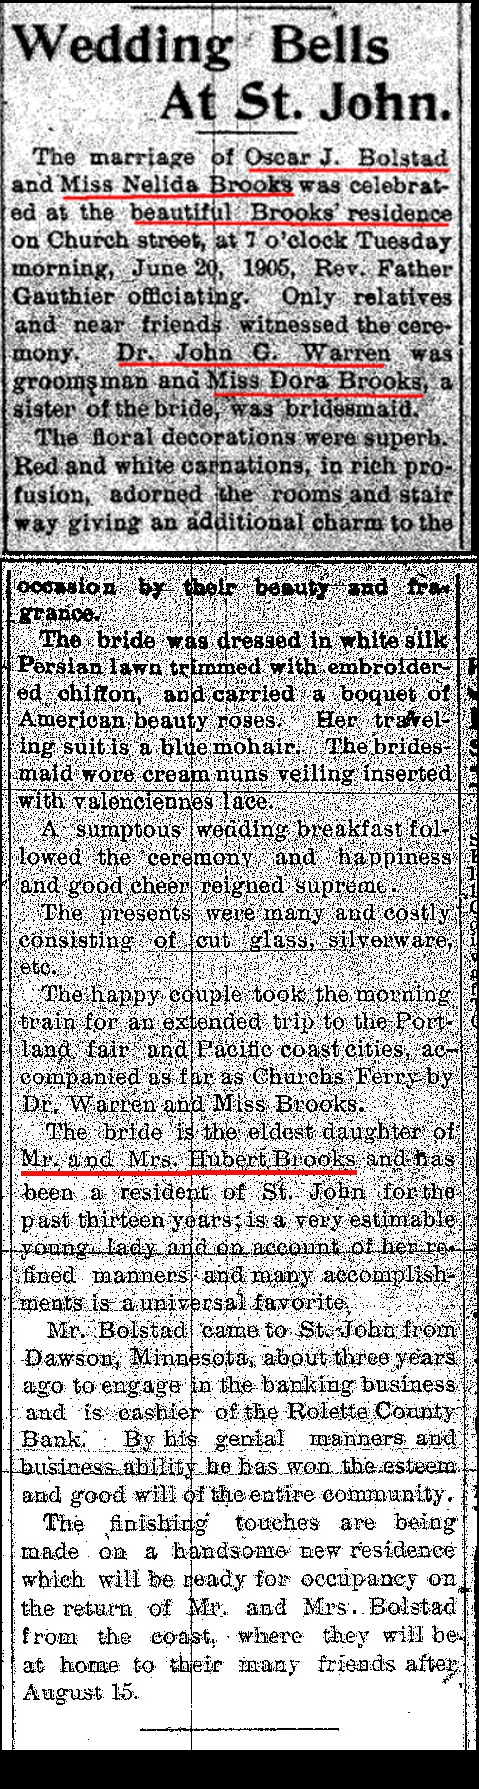 Newspaper Announcement of Marriage of Nellie Brooks to Oscar Bolstad